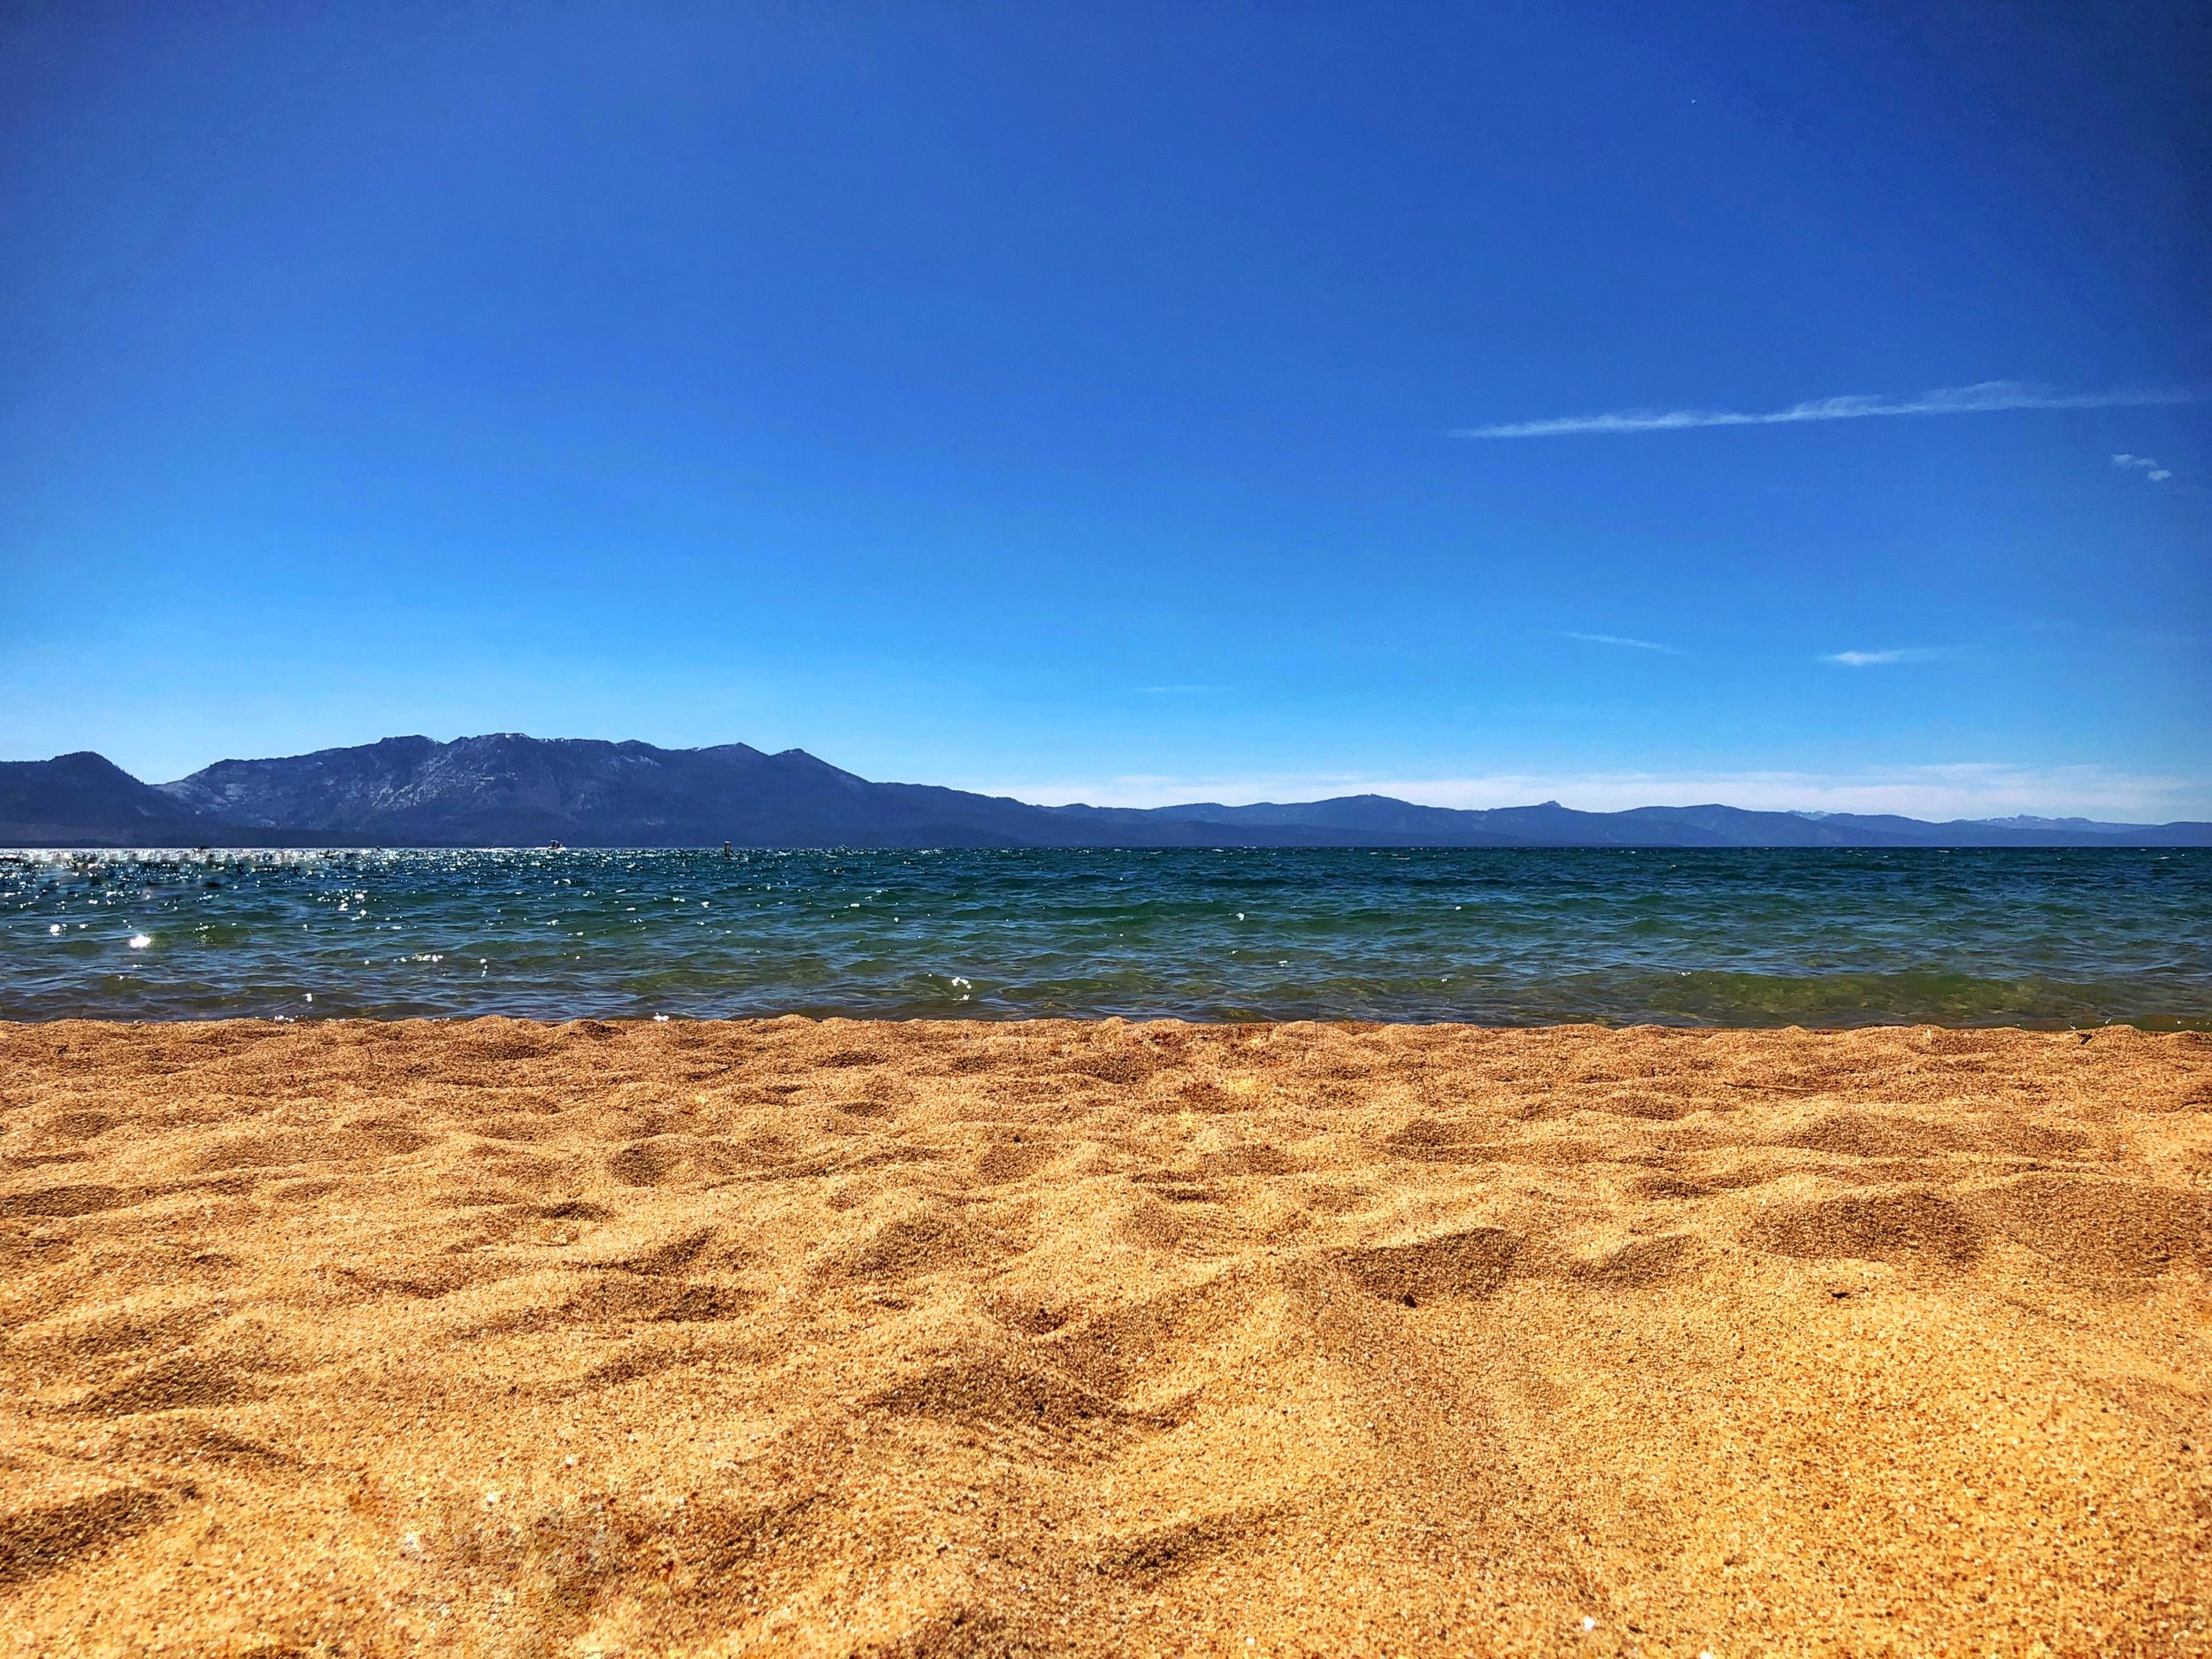 A private beach on the shore of south lake tahoe